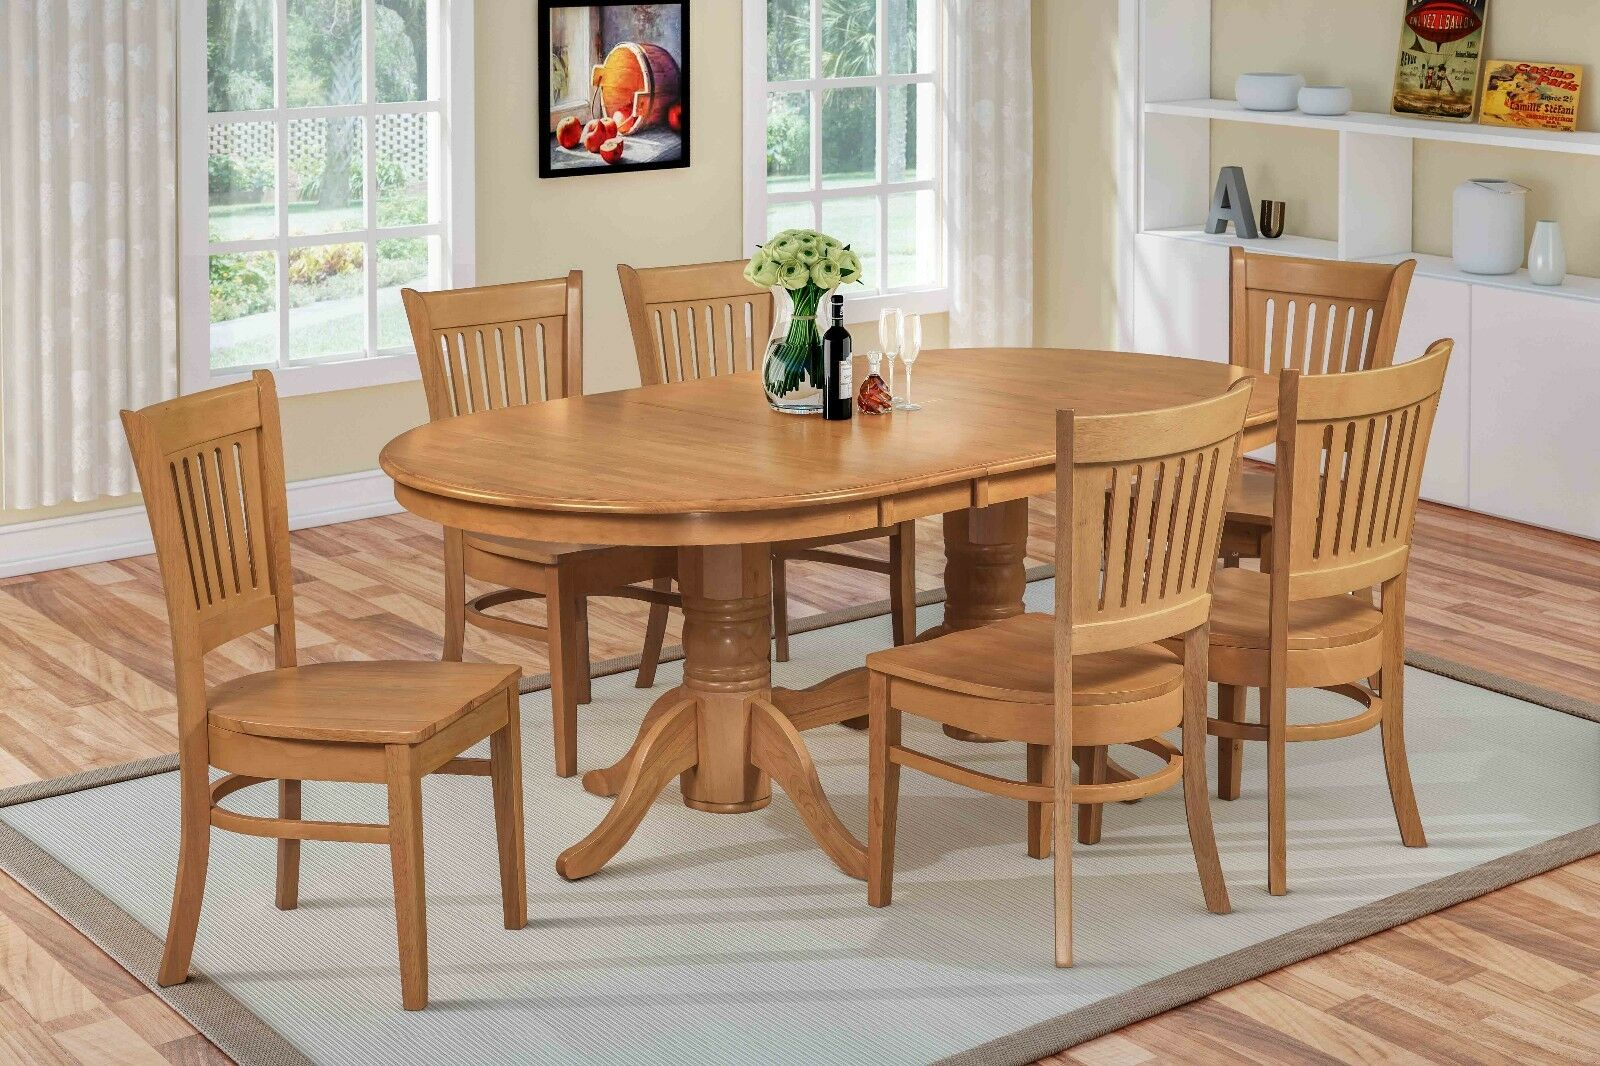 7 PC Oval Dinette Kitchen Dining Room Set 42x78 Table And 6 Chairs In Oak Be The First To Write A Review About This Product 21 Watching Picture 1 Of